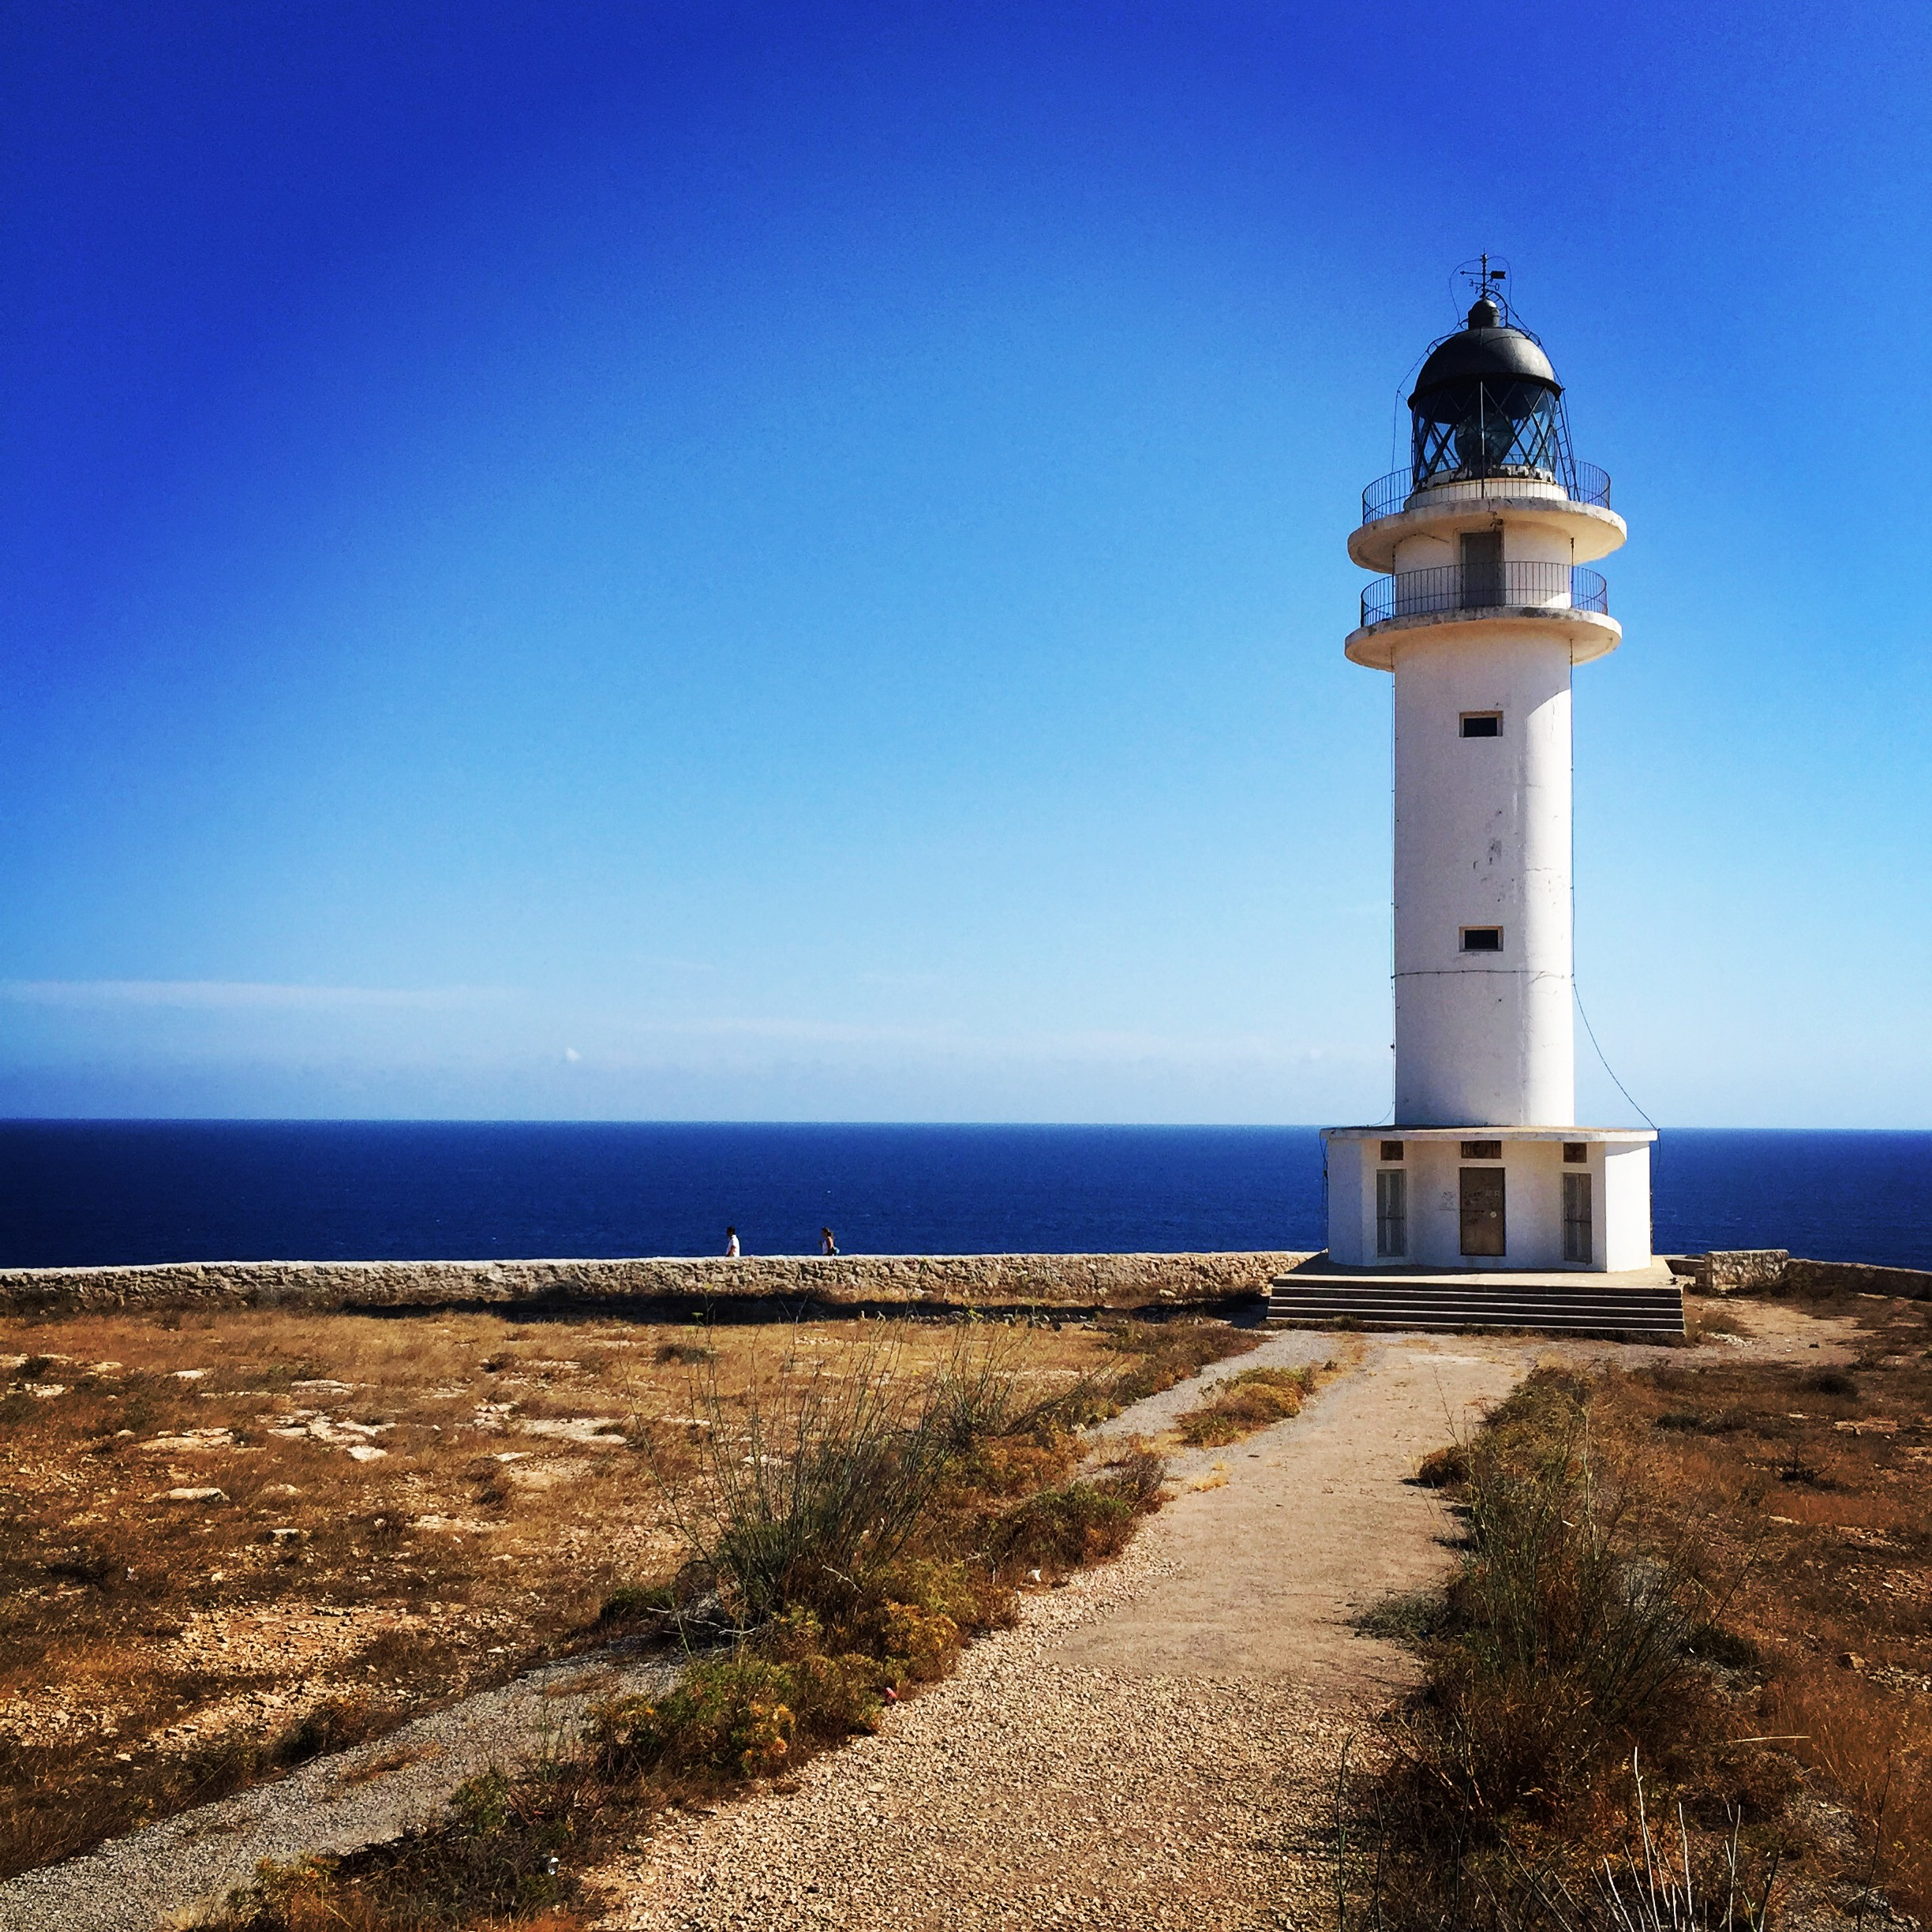 Taken on Formentera Island, Spain, June 24th, 2015